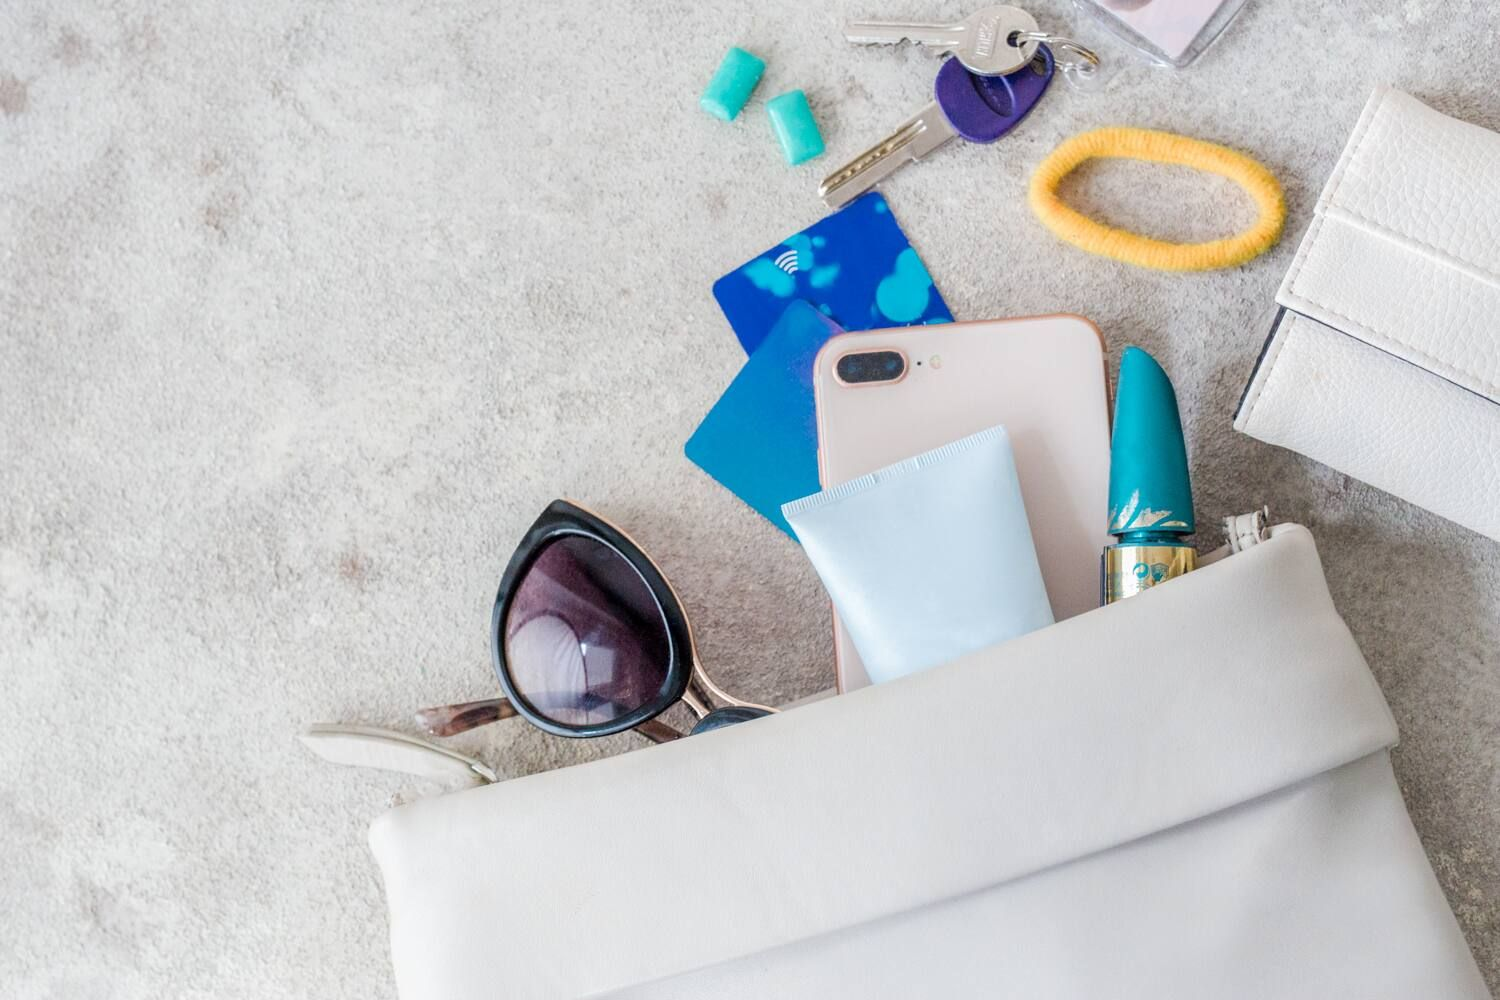 personal objects following of a bag